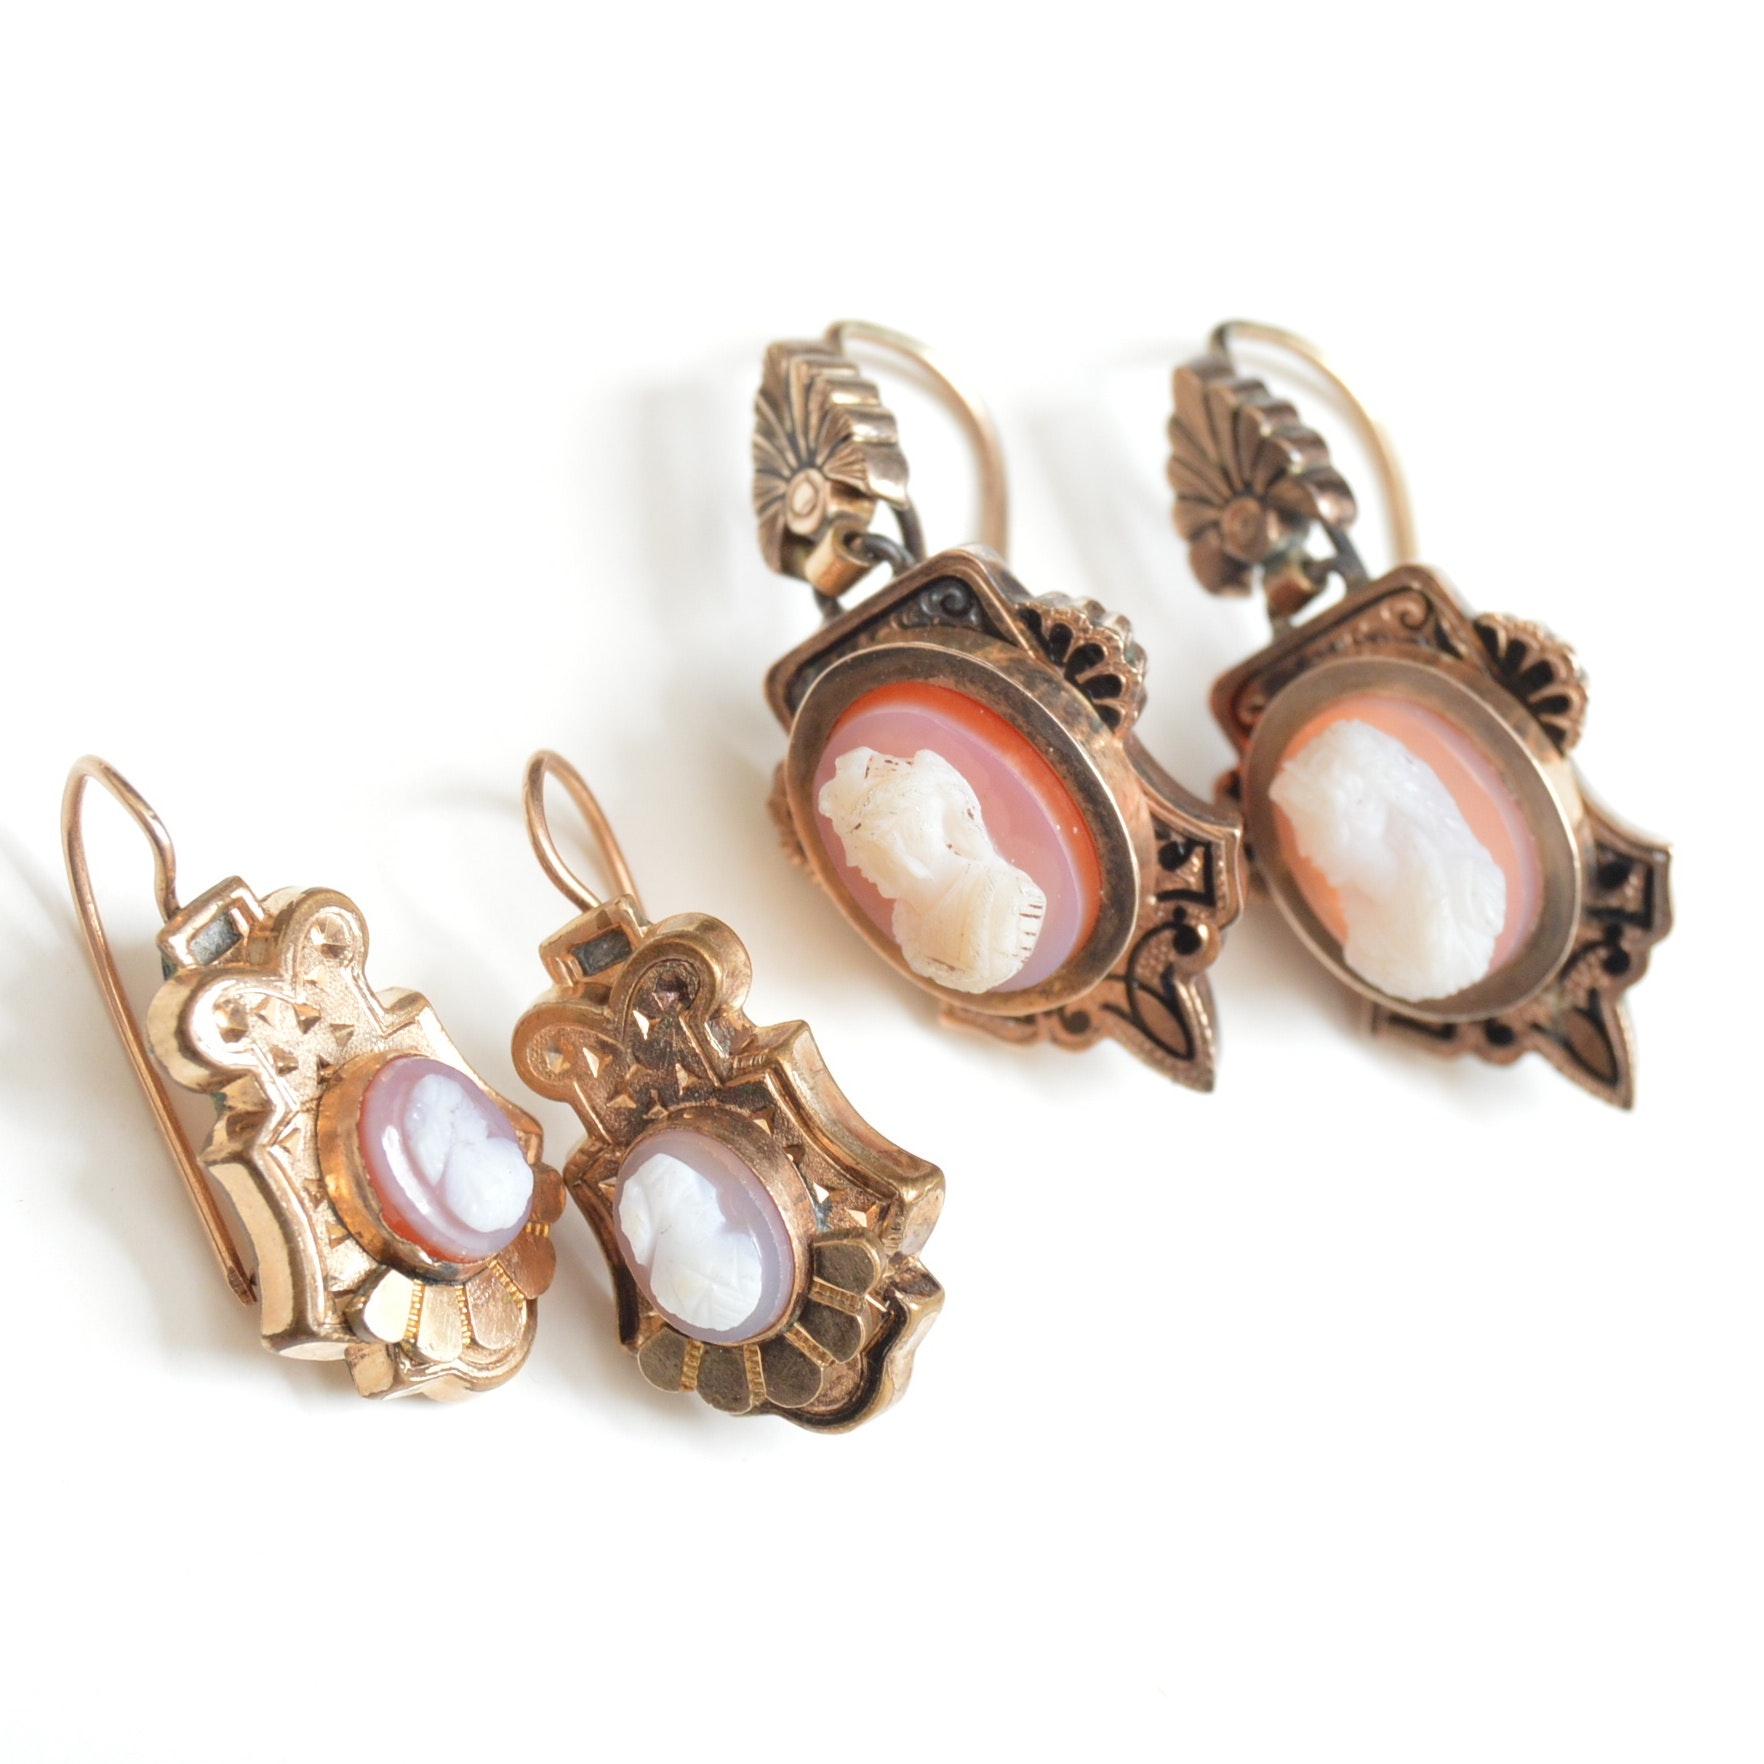 Victorian 10K Yellow Gold and Agate Cameo Pierced Earrings